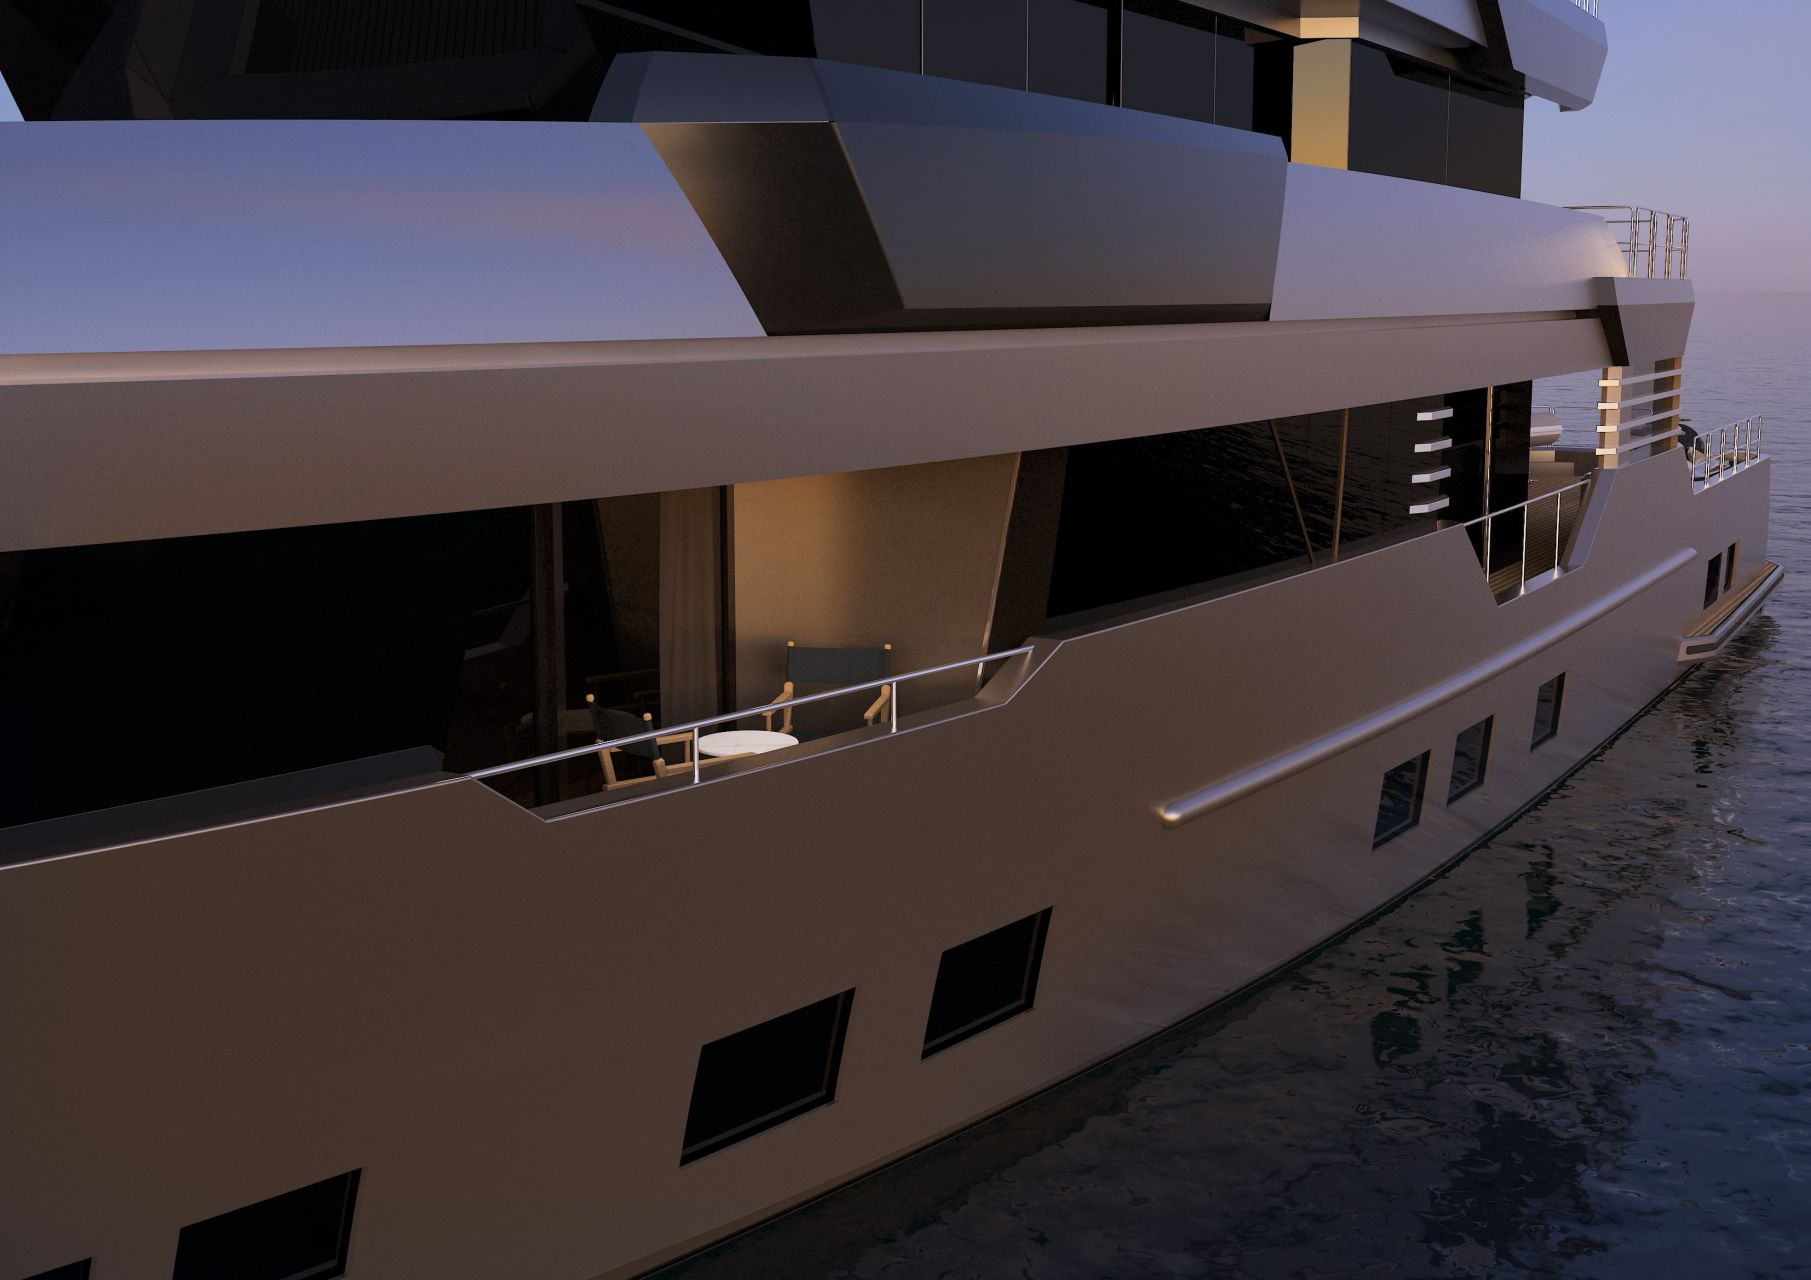 m/y pacifico 32 yacht for sale side deck lines